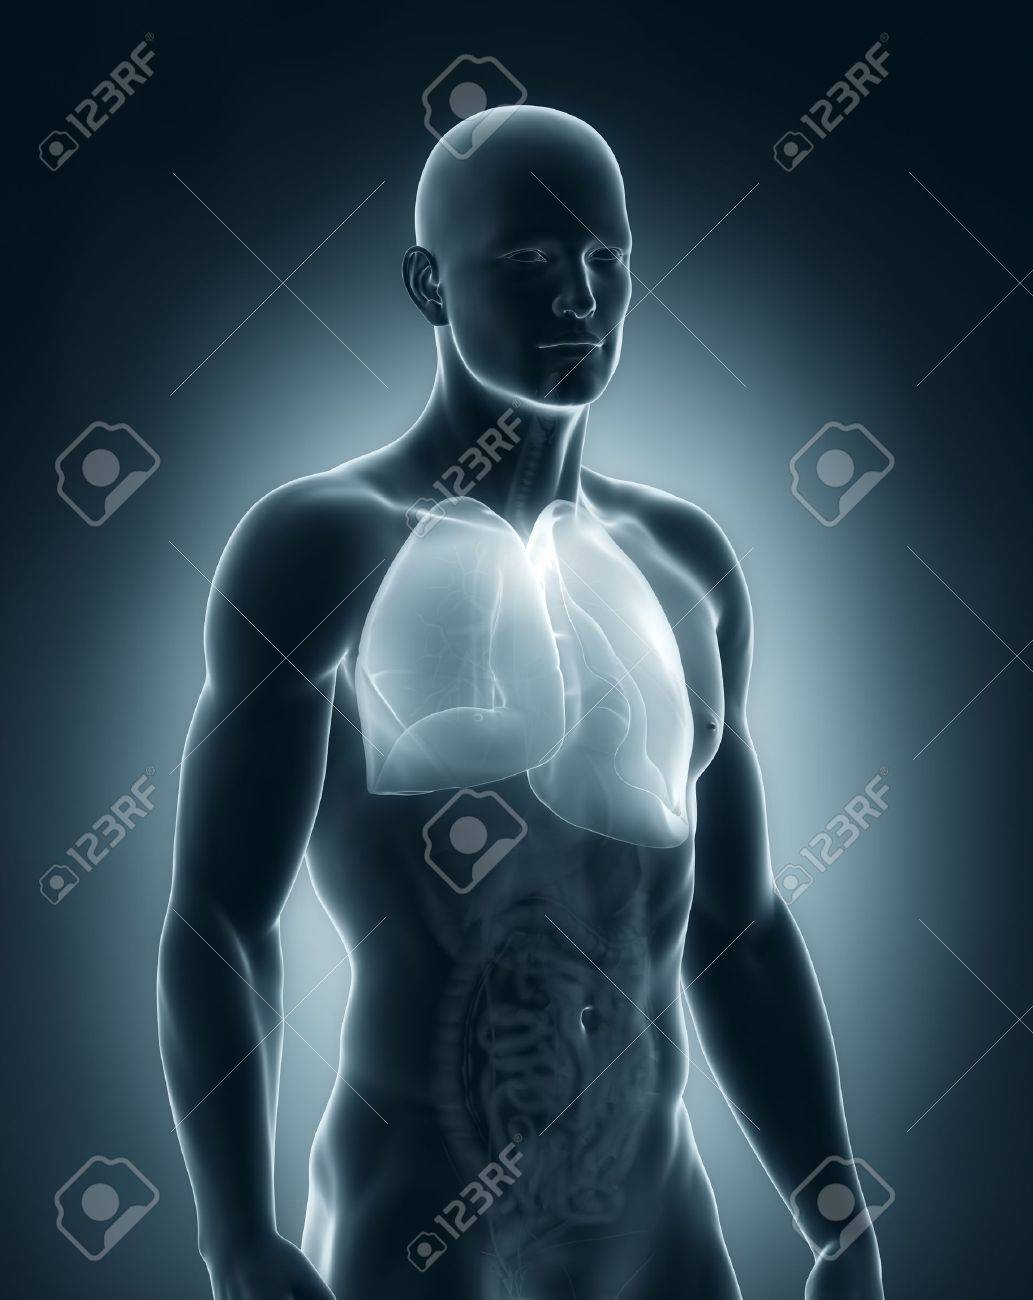 Male lungs anatomy Stock Photo - 21789237